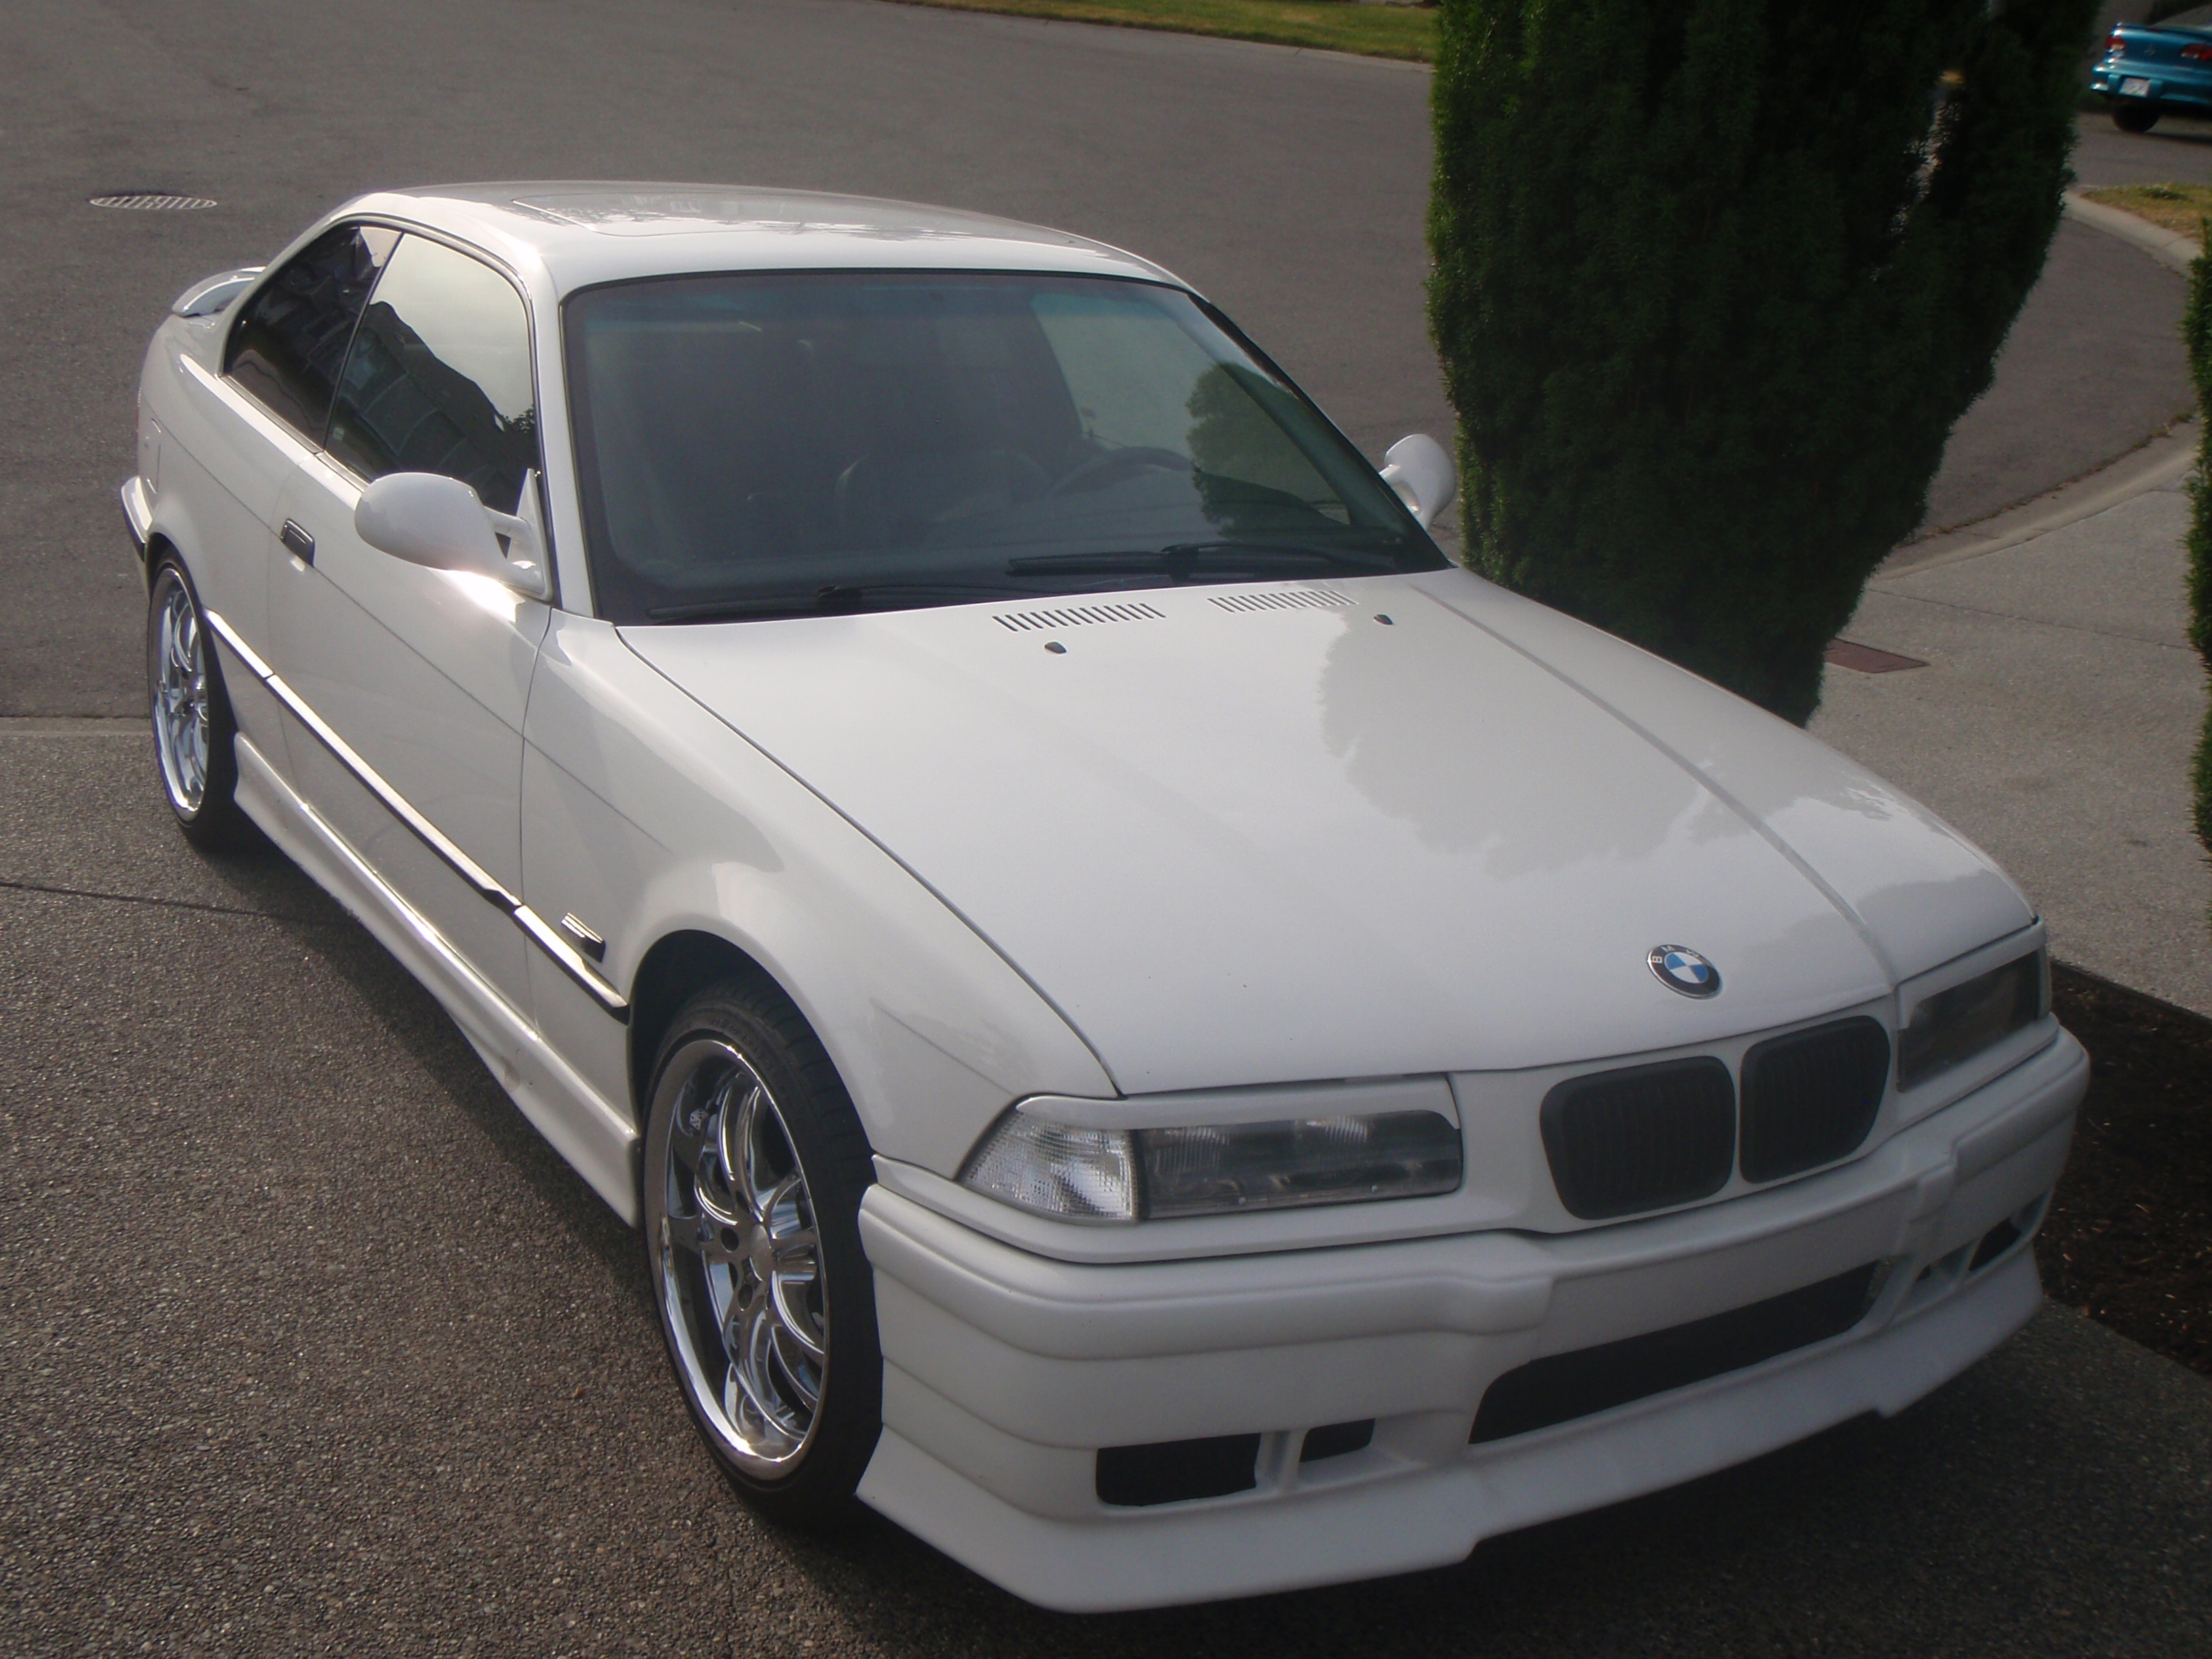 scottmons 1996 bmw 3 series328is coupe 2d specs photos modification info at cardomain. Black Bedroom Furniture Sets. Home Design Ideas